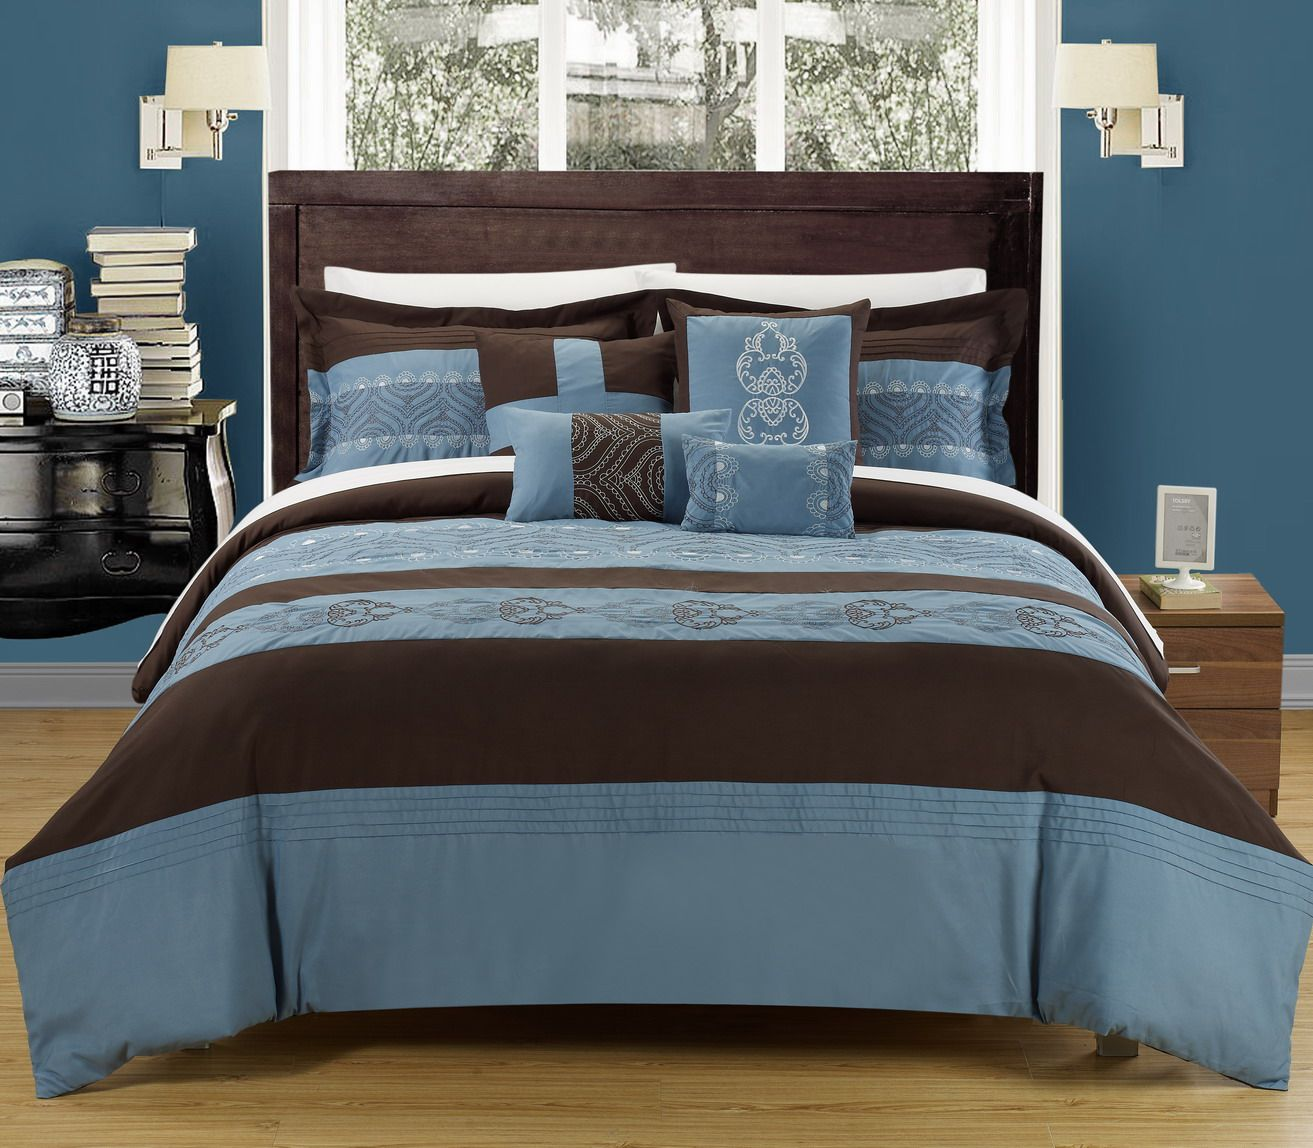 Embroidered Comforter Set Featuring Blue And Brown Tones